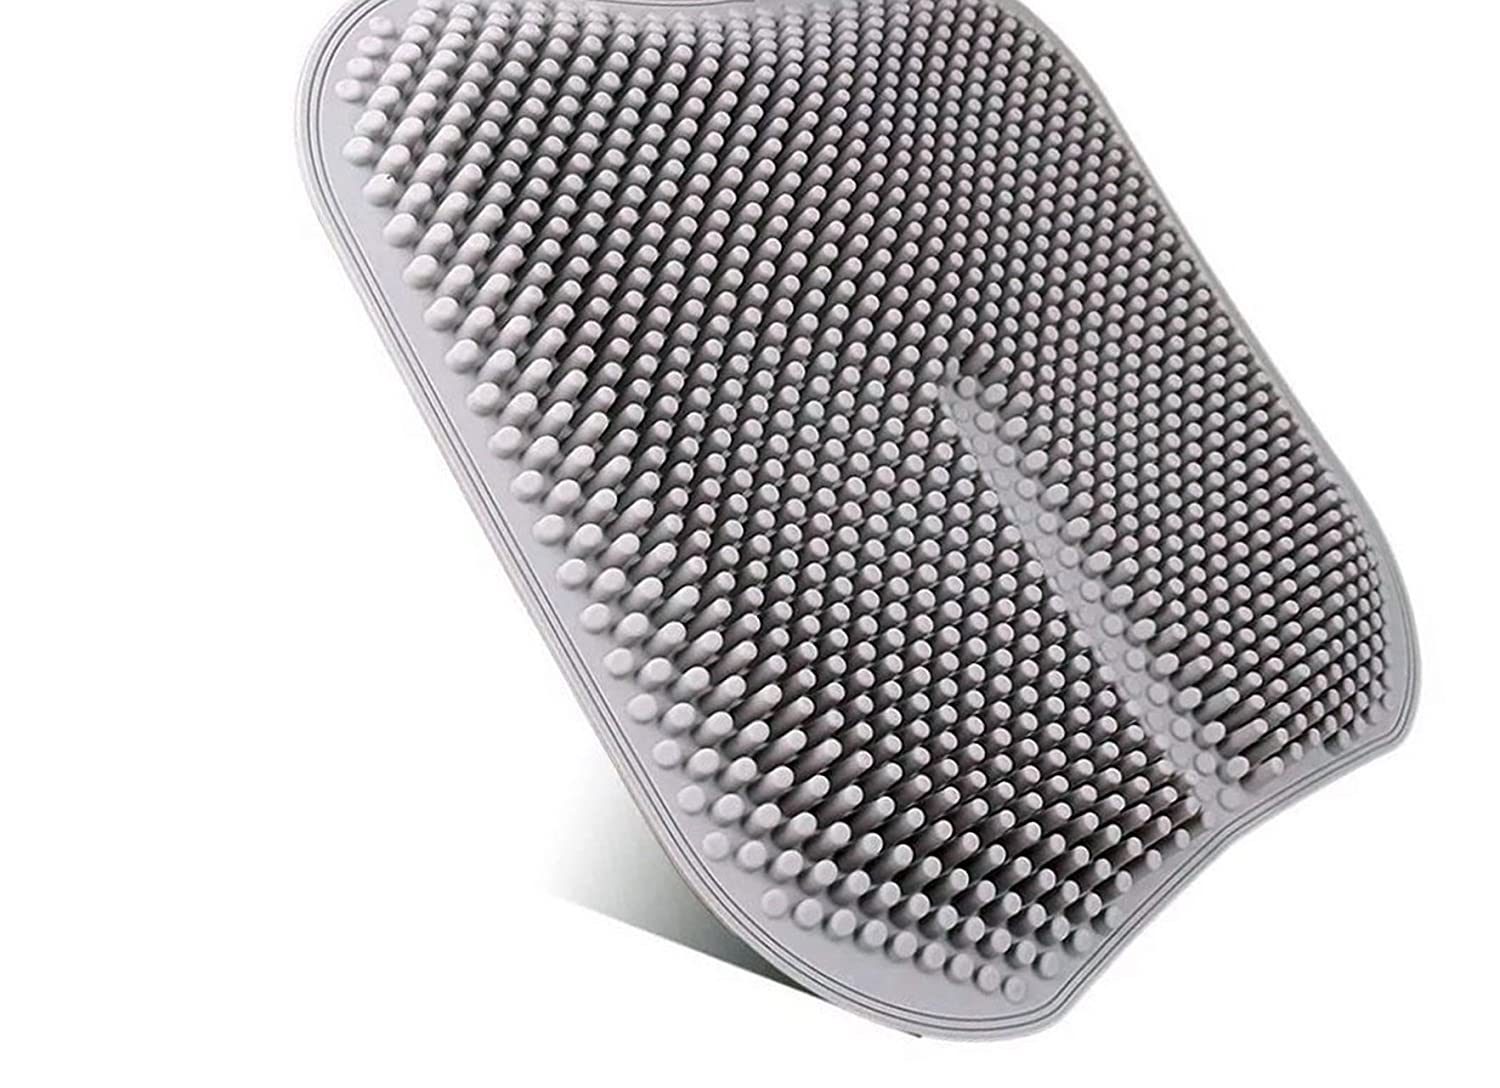 T&T Gel Sheet Cushion pad Nonslip to Prevent Pain on The Back and The Buttocks, Breathable and Also Hard to Sweat as hinya. (Grey) tetsumeidou